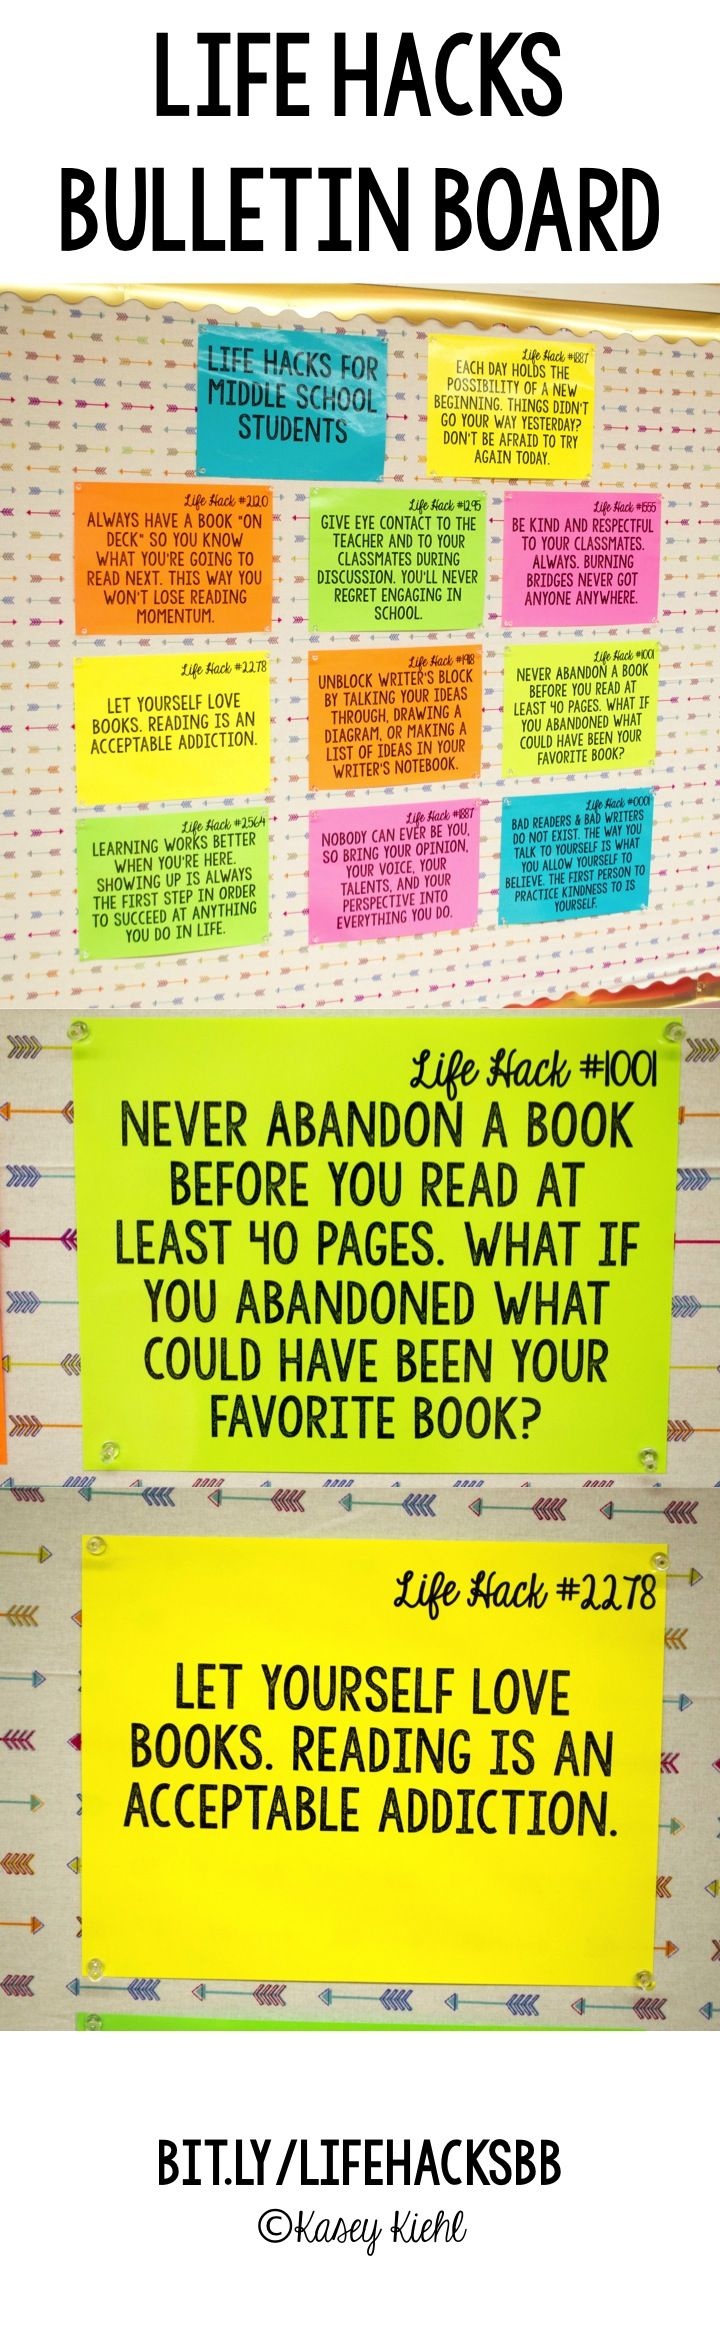 Poster design ideas for school - Life Hacks Posters Bulletin Board